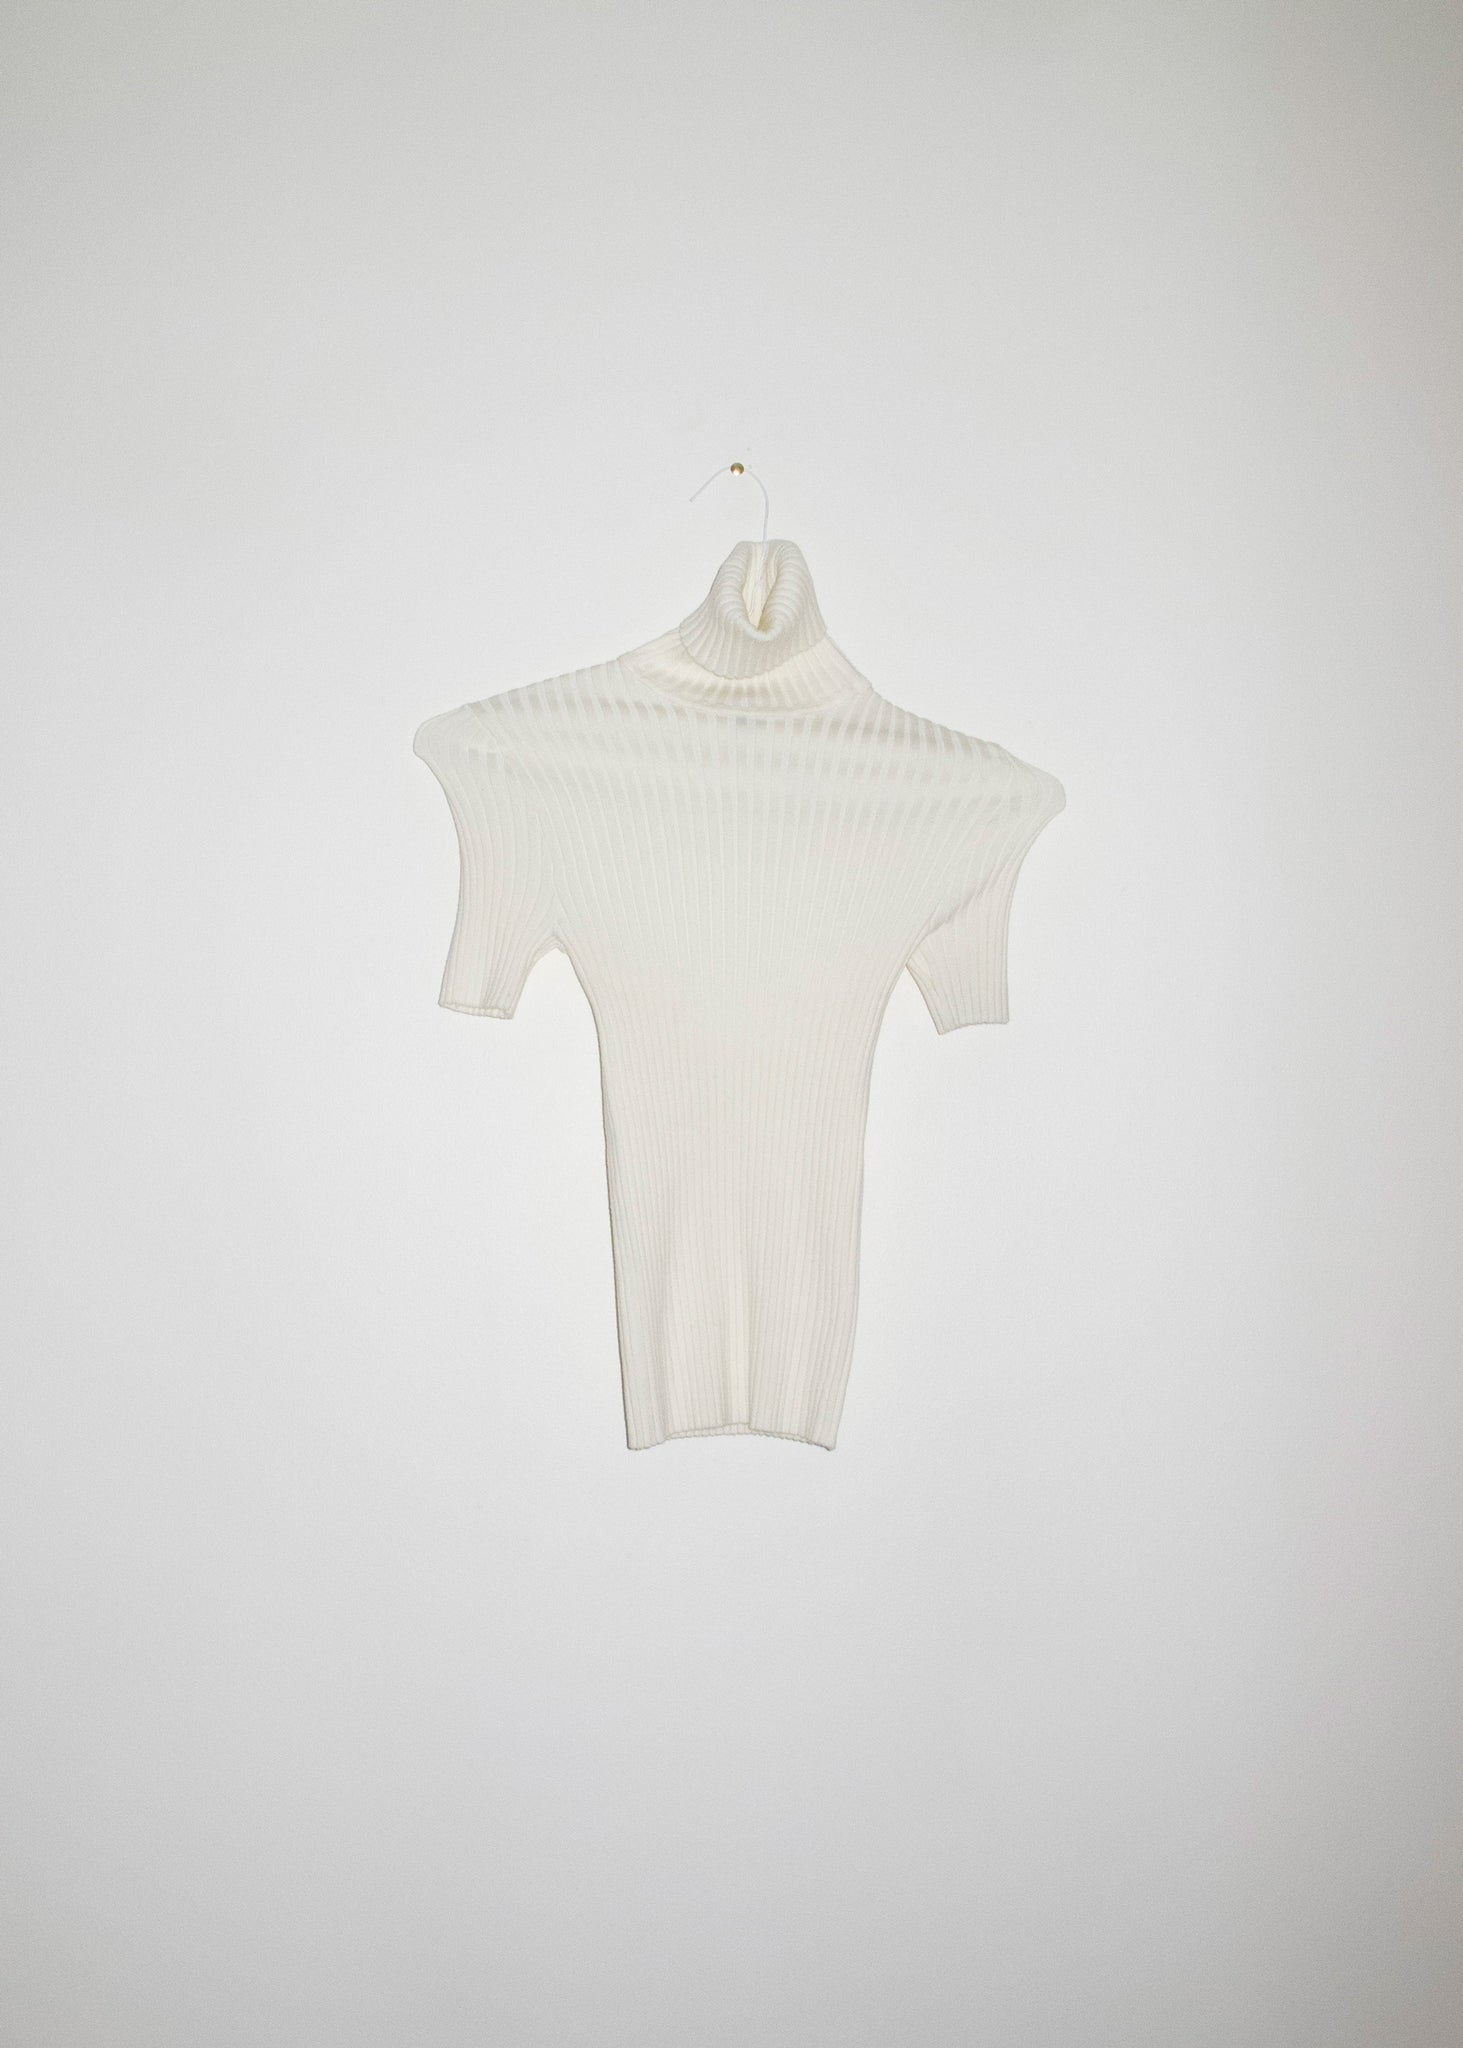 NONNA Turtleneck Tee in Ivory